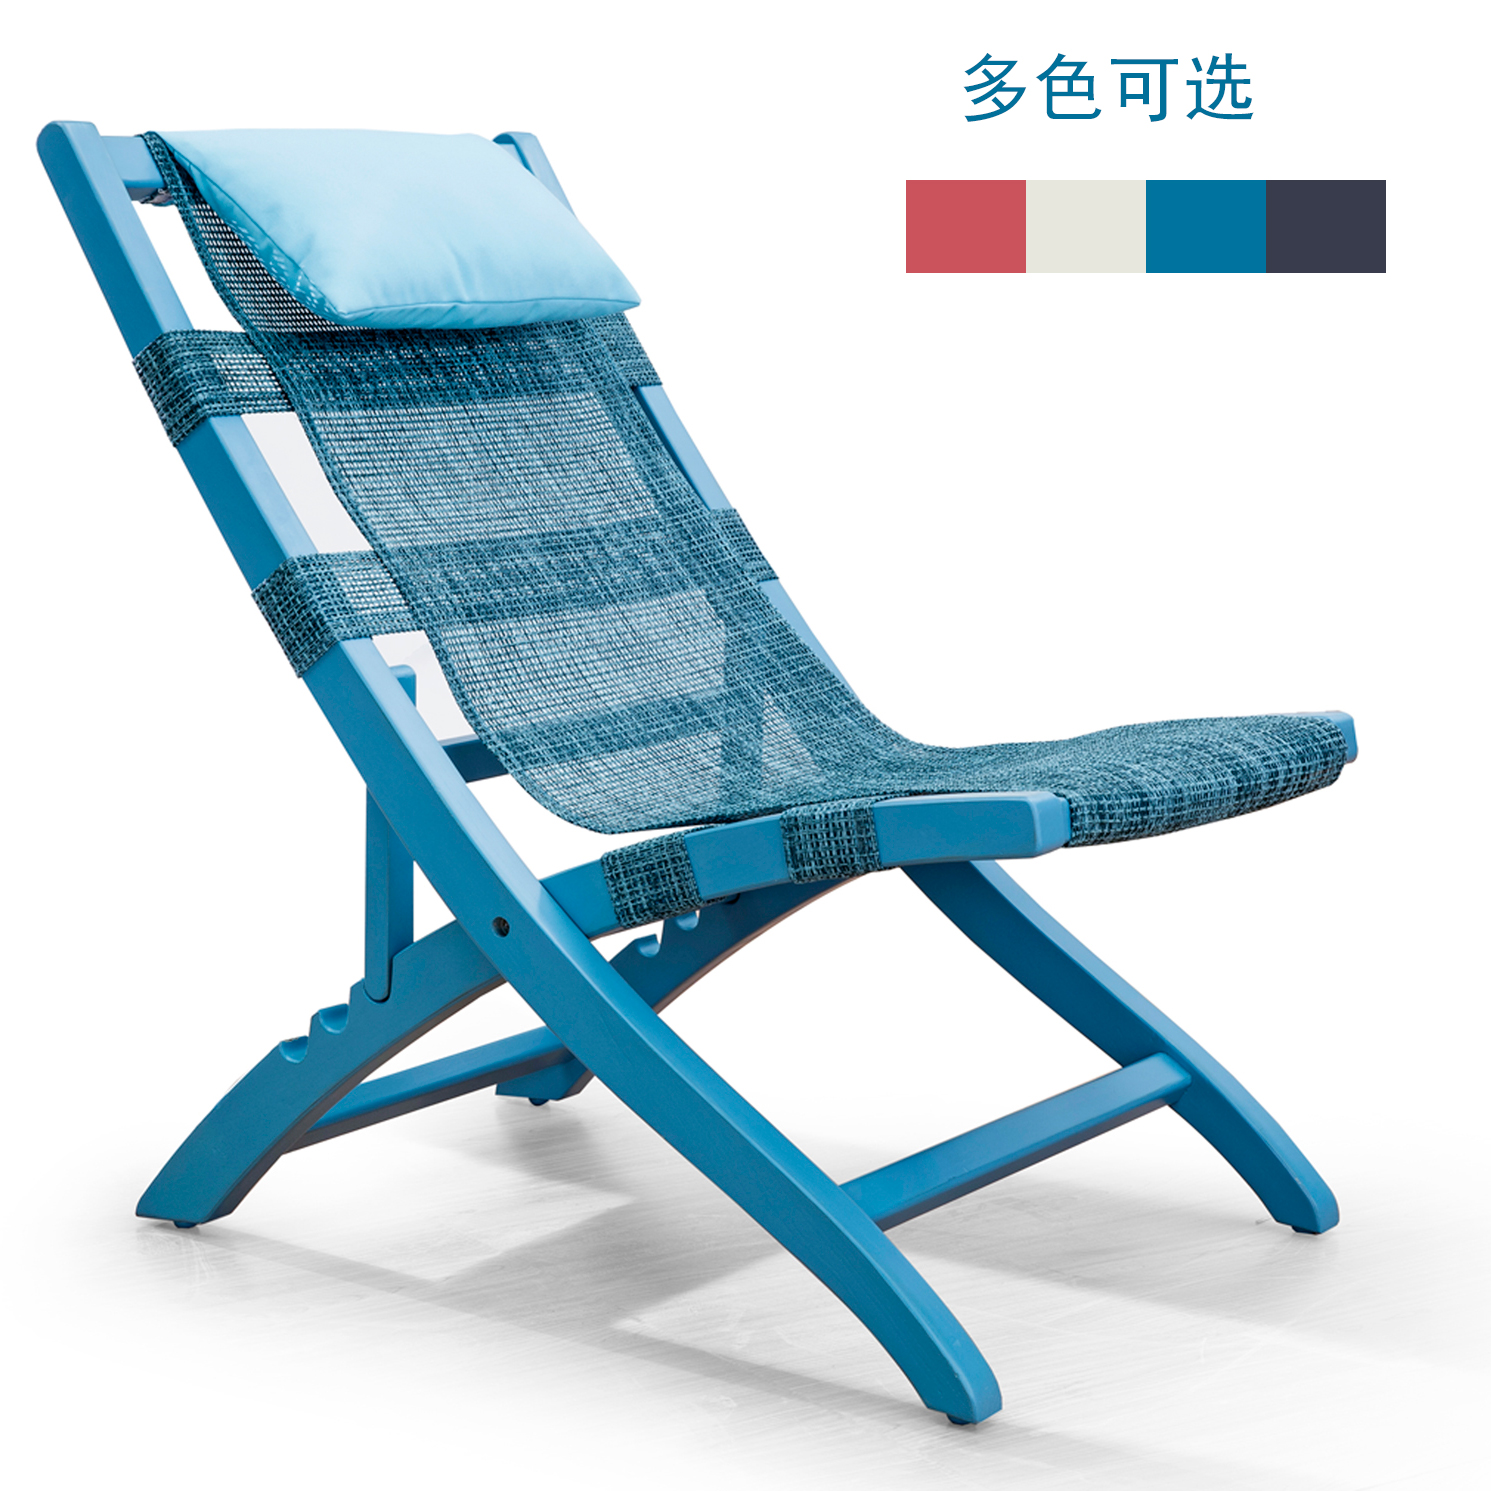 Folding outdoor lounge chair - Solid Wood Bedroom Chaise Lounge Chairs Wooden Folding Outdoor Balcony Patio Cloth Contraction Recliner In Chaise Lounge From Furniture On Aliexpress Com